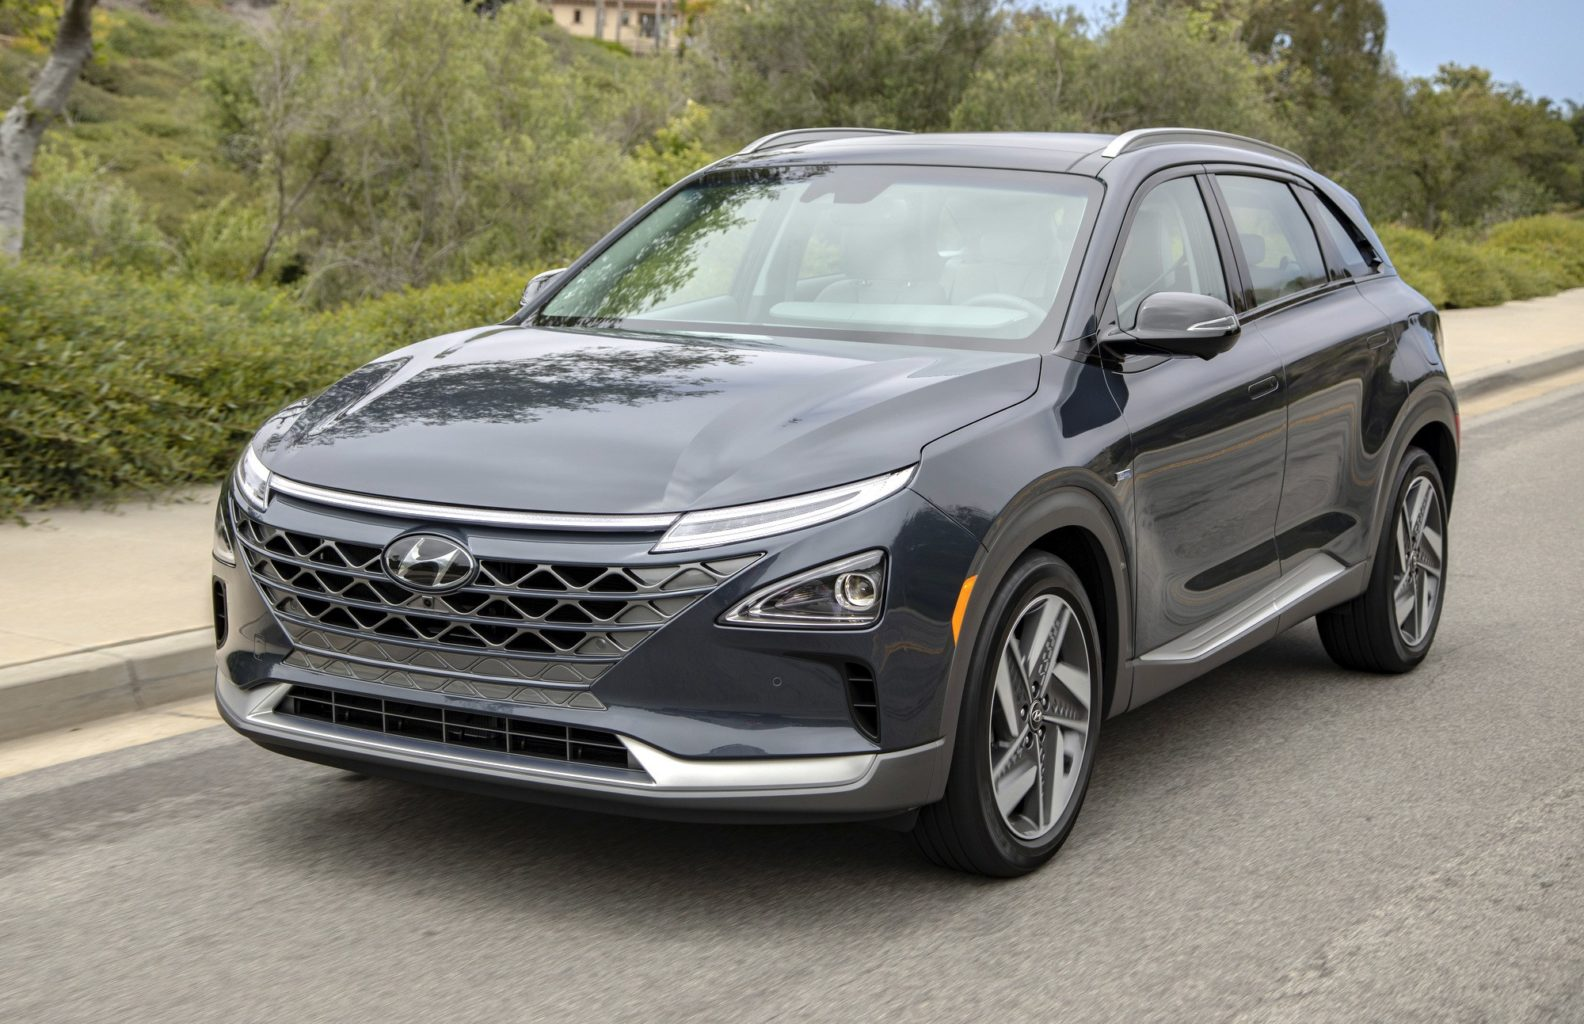 Flash Drive 2020 Hyundai Nexo Fcev Clean Fleet Report